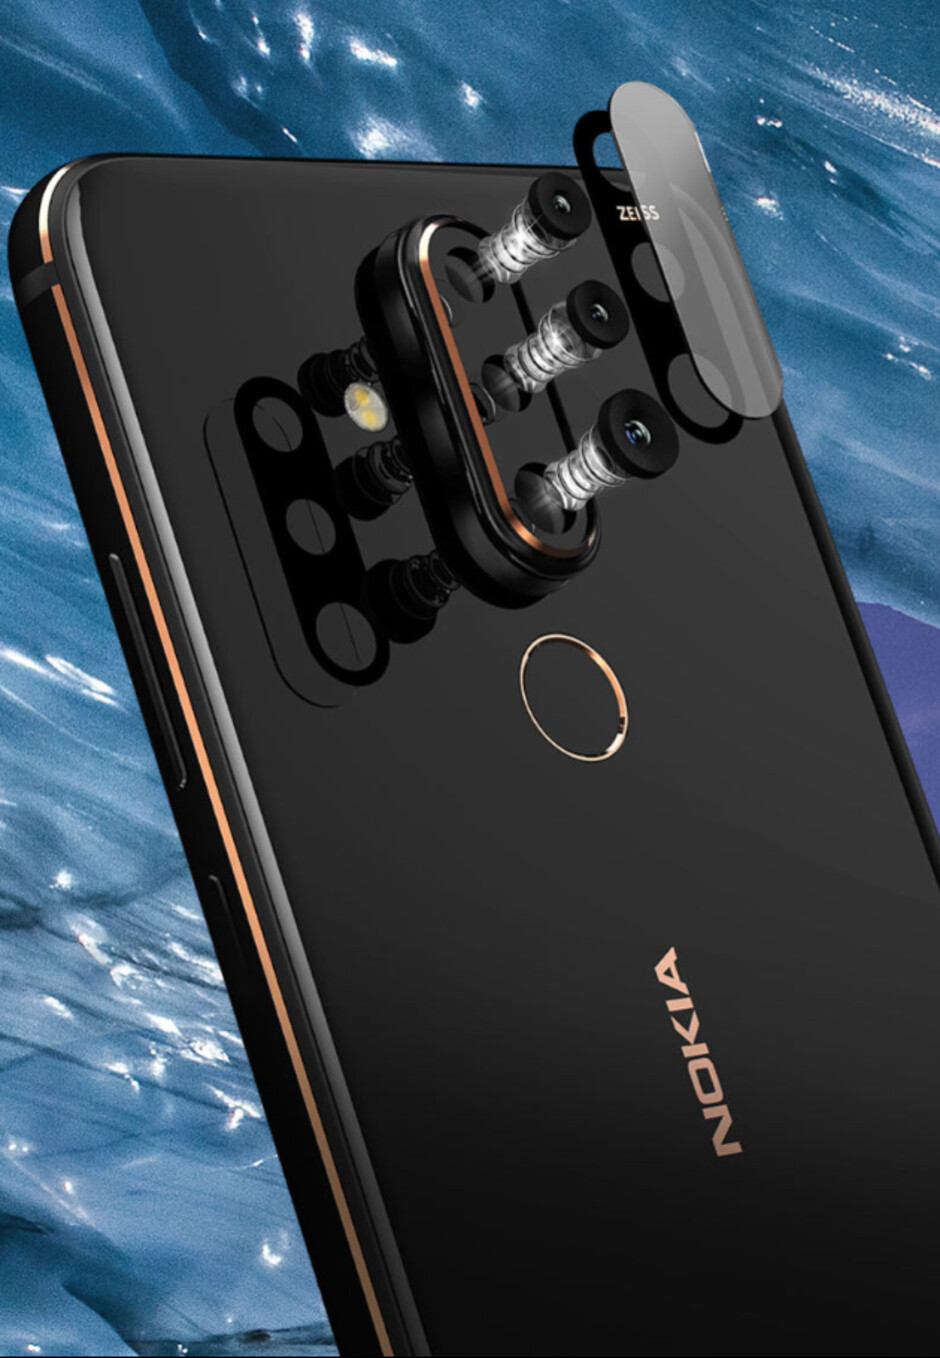 The Nokia X71's ZEISS-branded cameras - Meet the Nokia X71, a triple-camera smartphone that also has a display hole